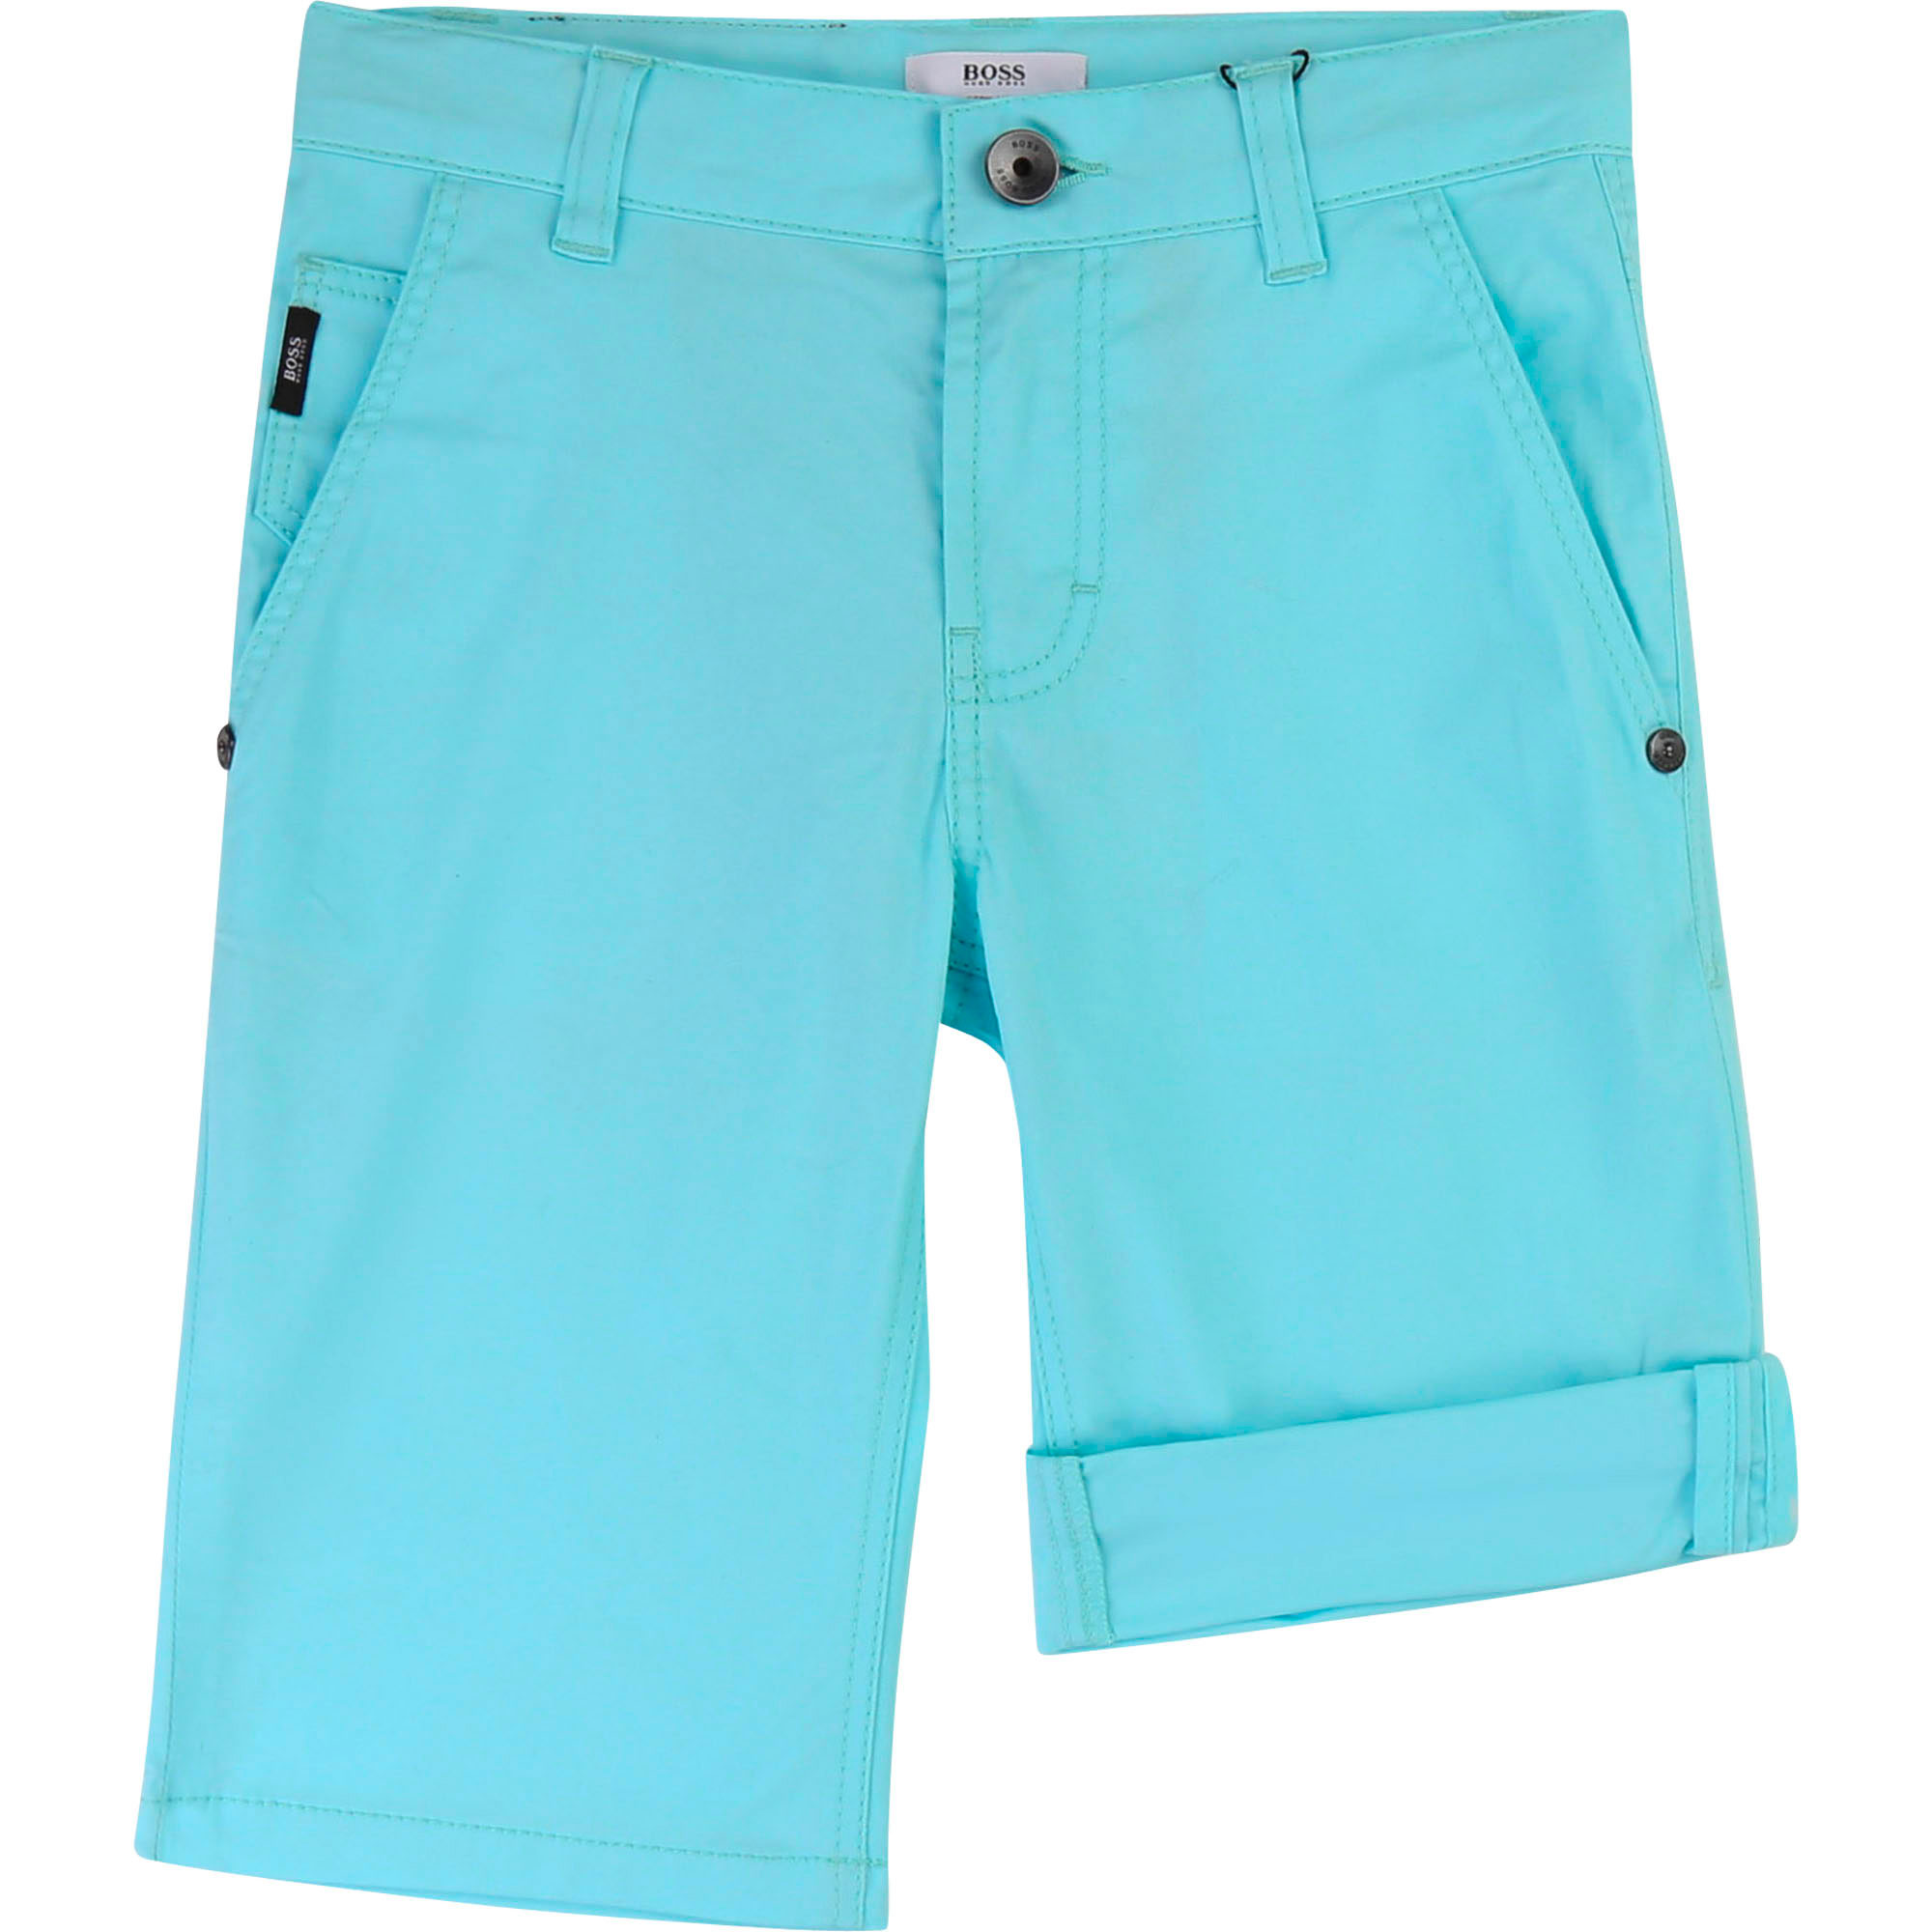 BERMUDA SHORTS+BELT BOSS for BOY